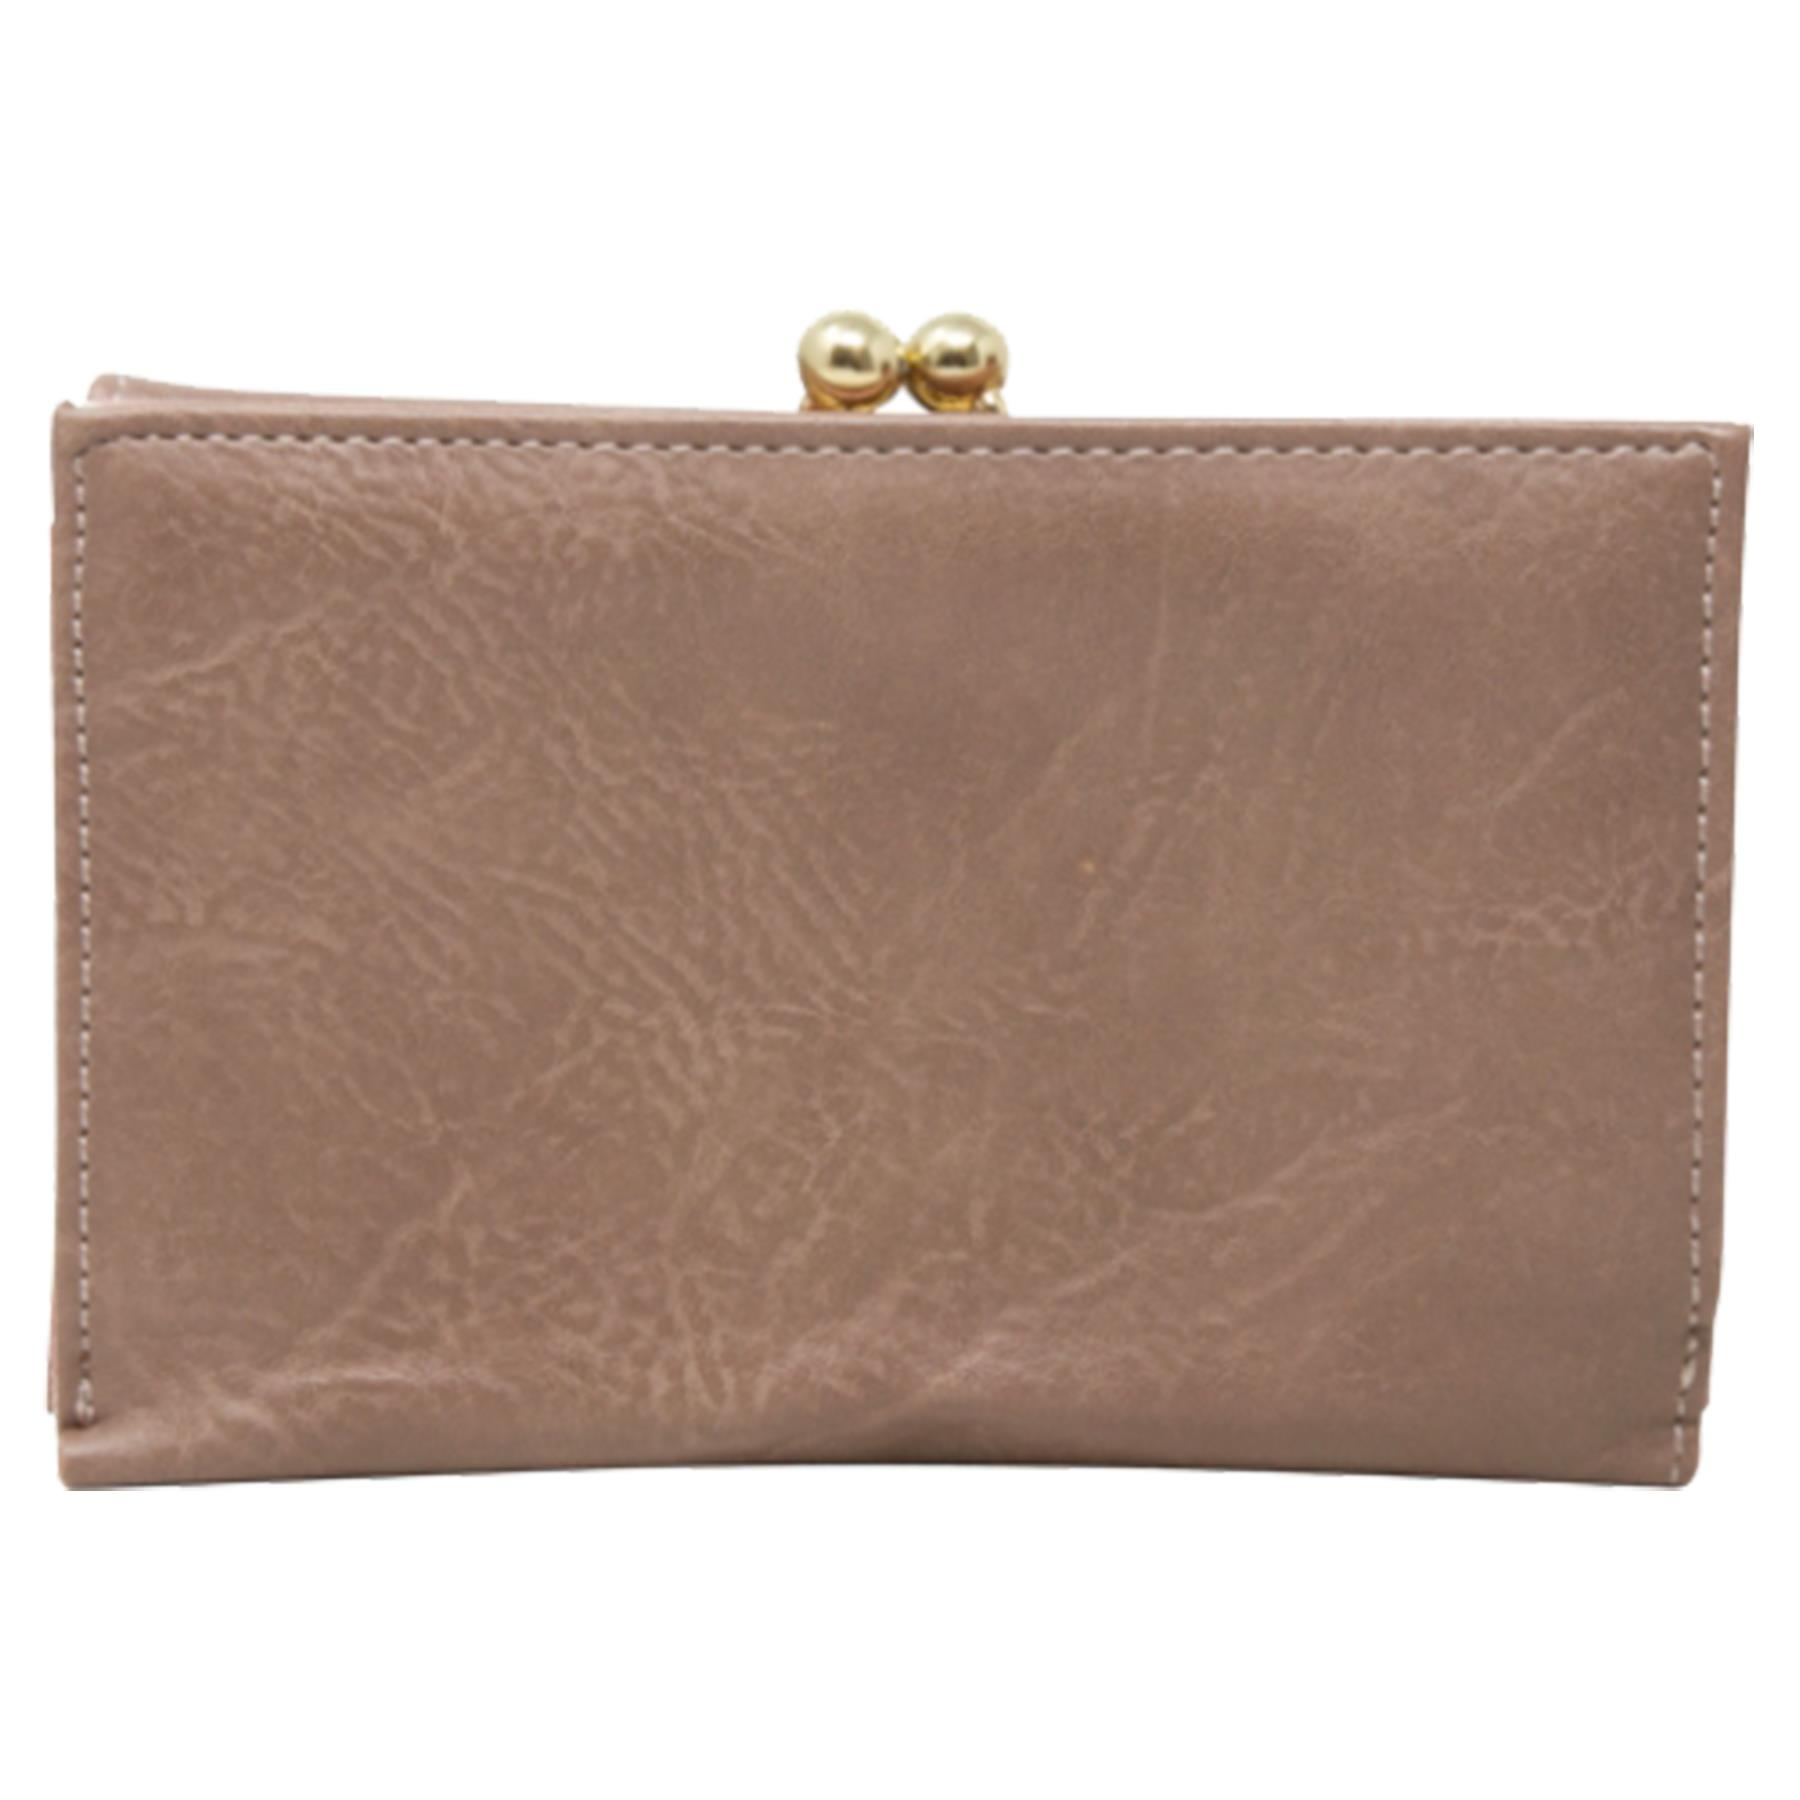 New-Synthetic-Leather-Kiss-Lock-Compartment-Ladies-Casual-Wallet-Purse thumbnail 20